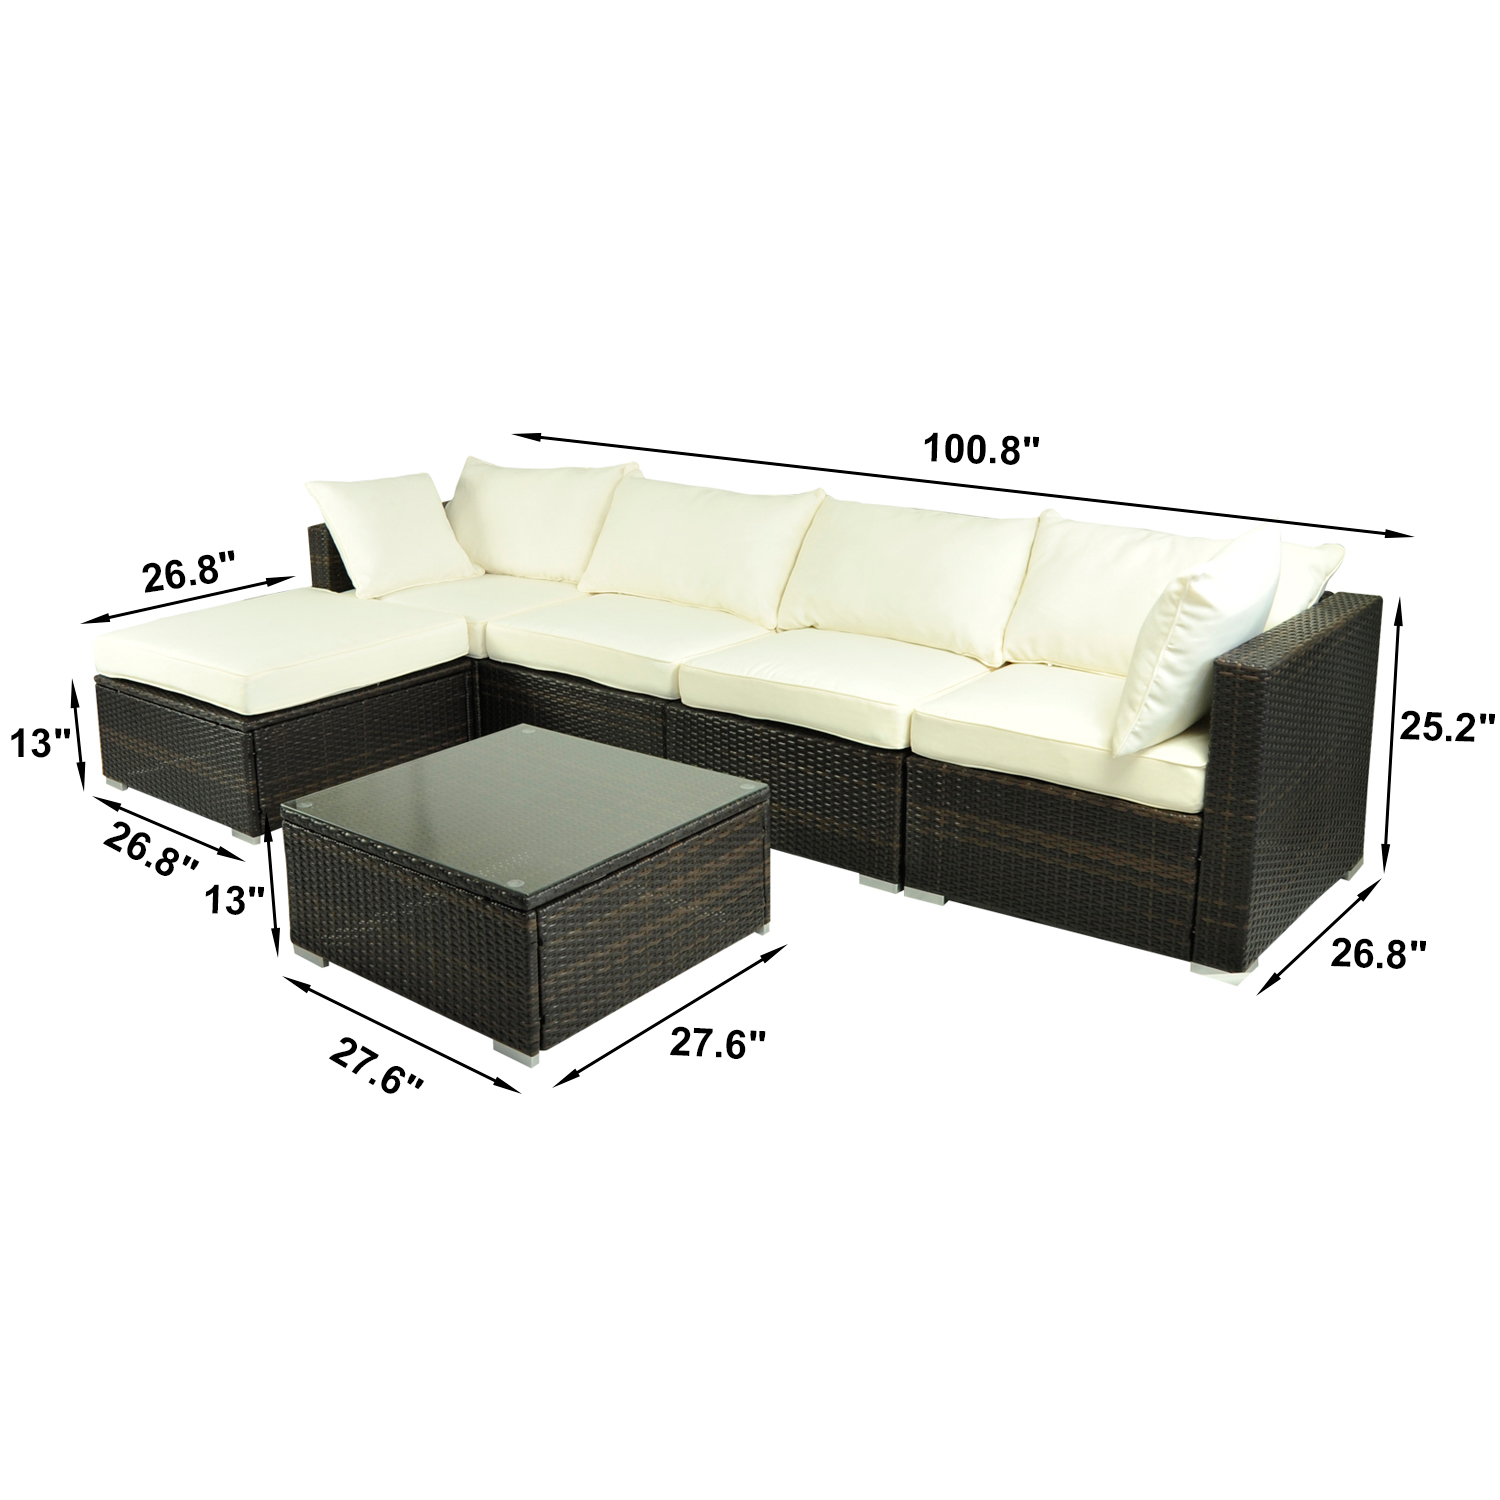 standard sofa table length star furniture brands outsunny 6pc patio rattan wicker outdoor